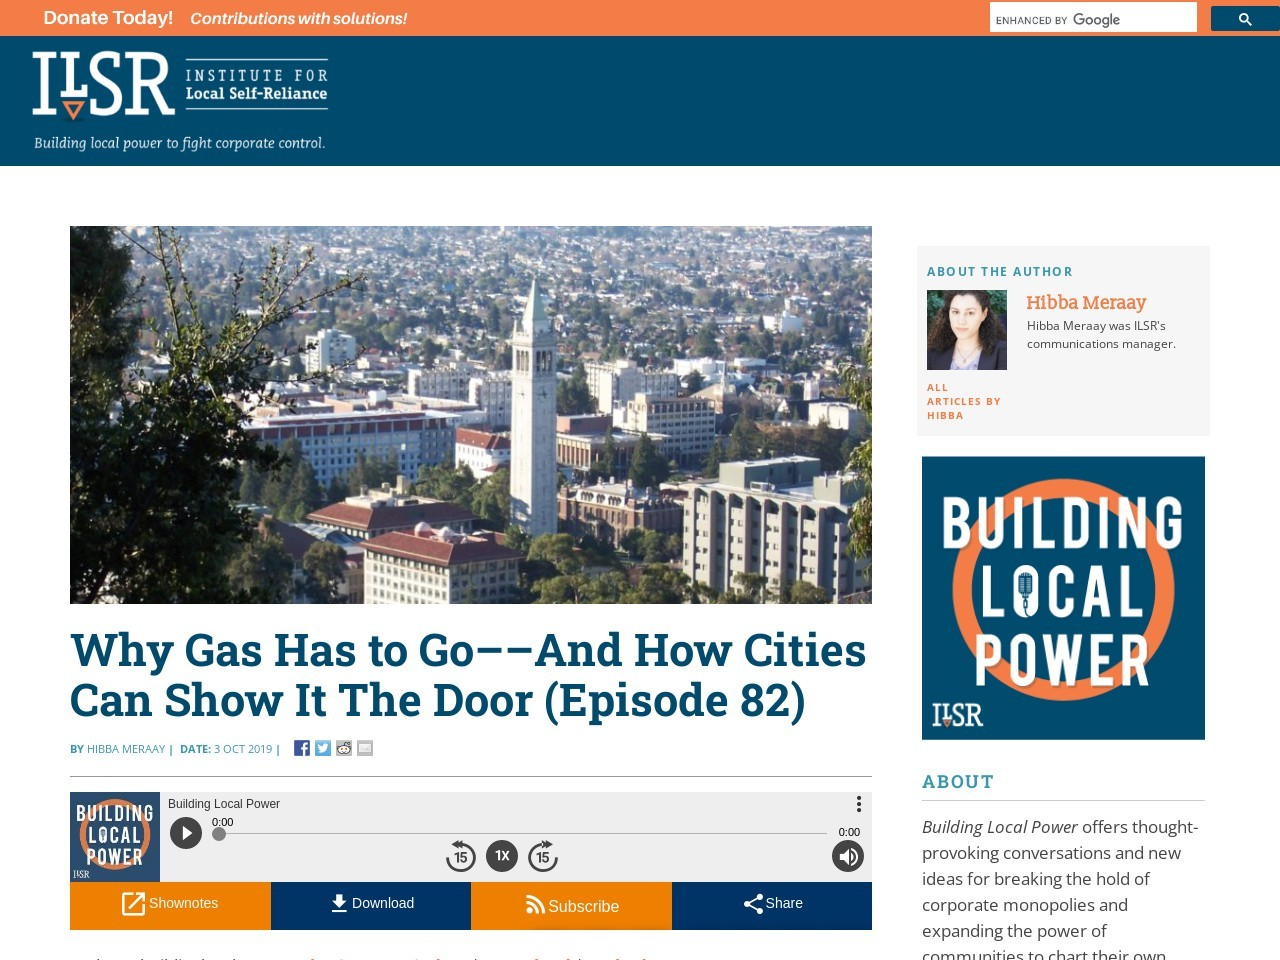 Why Gas Has to Go––And How Cities Can Show It The Door (Episode 82)